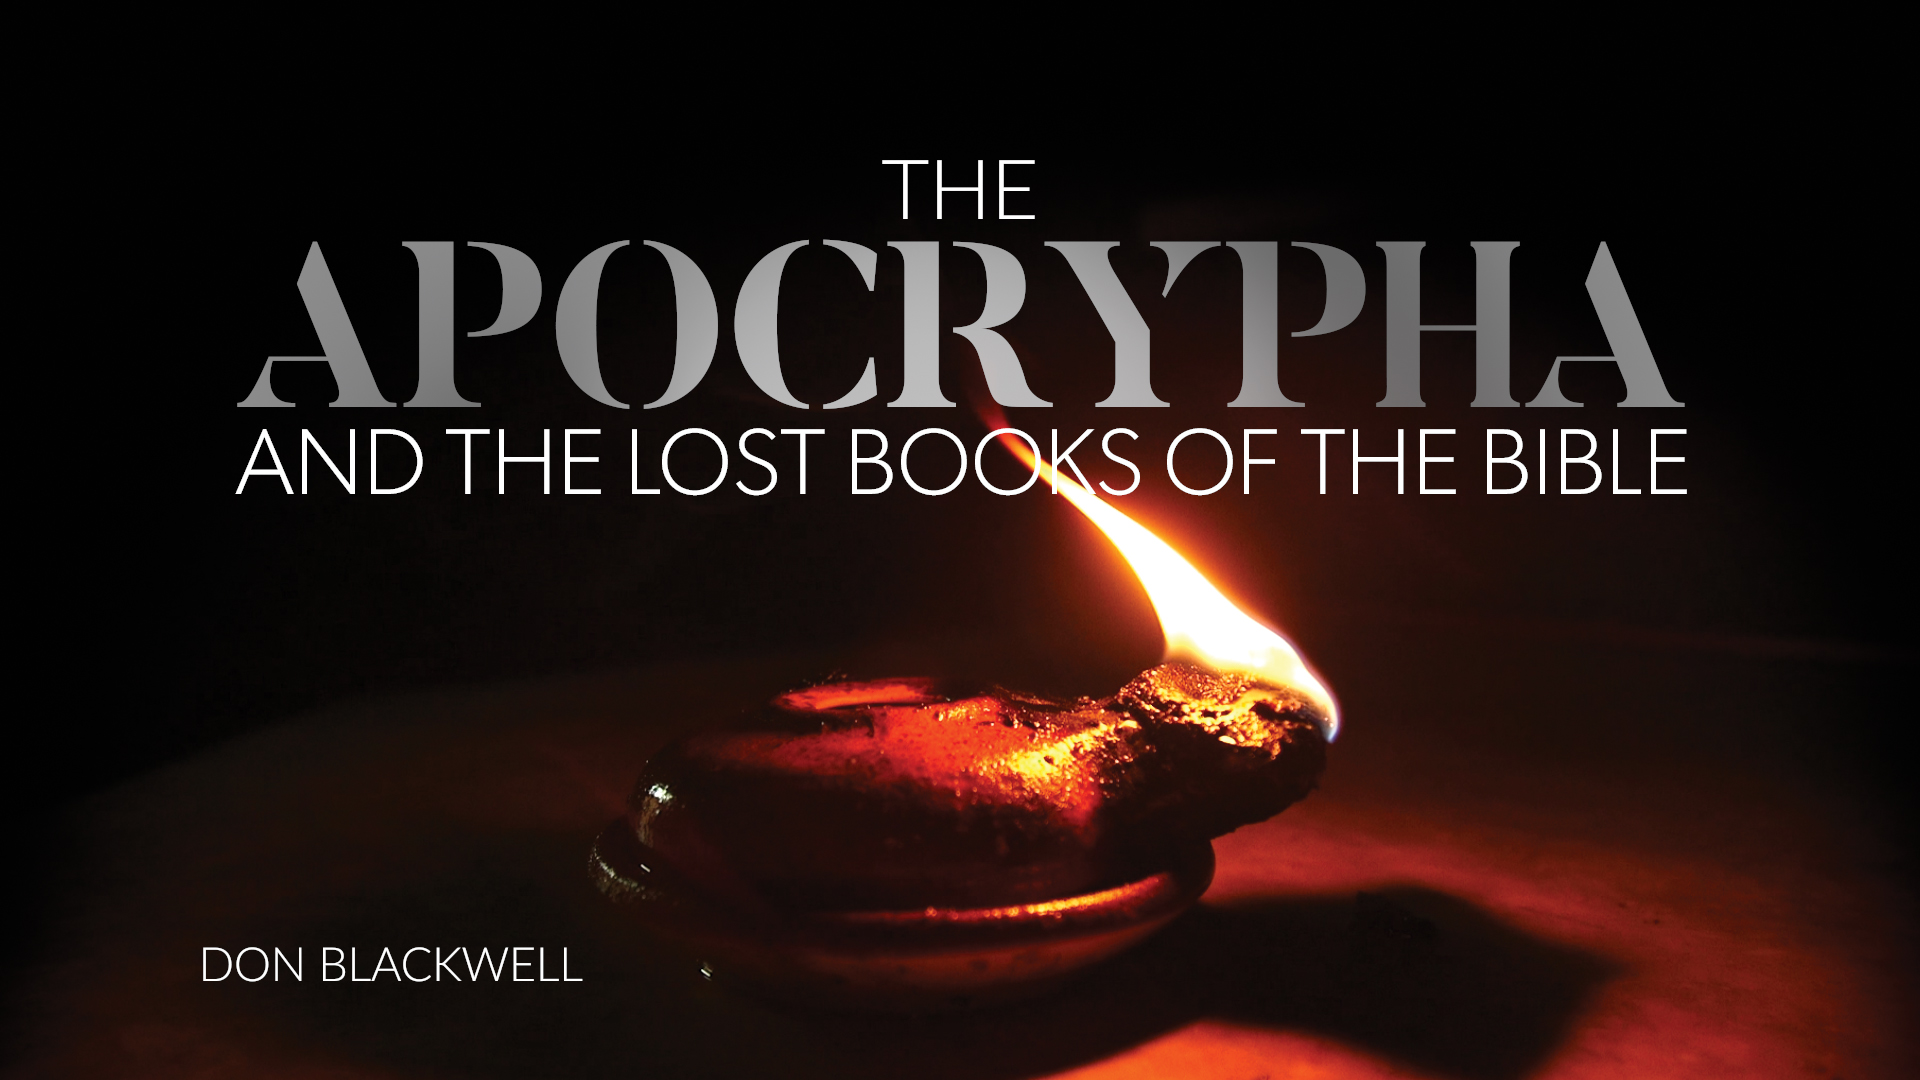 The Truth About the Apocrypha and Lost Books of the Bible